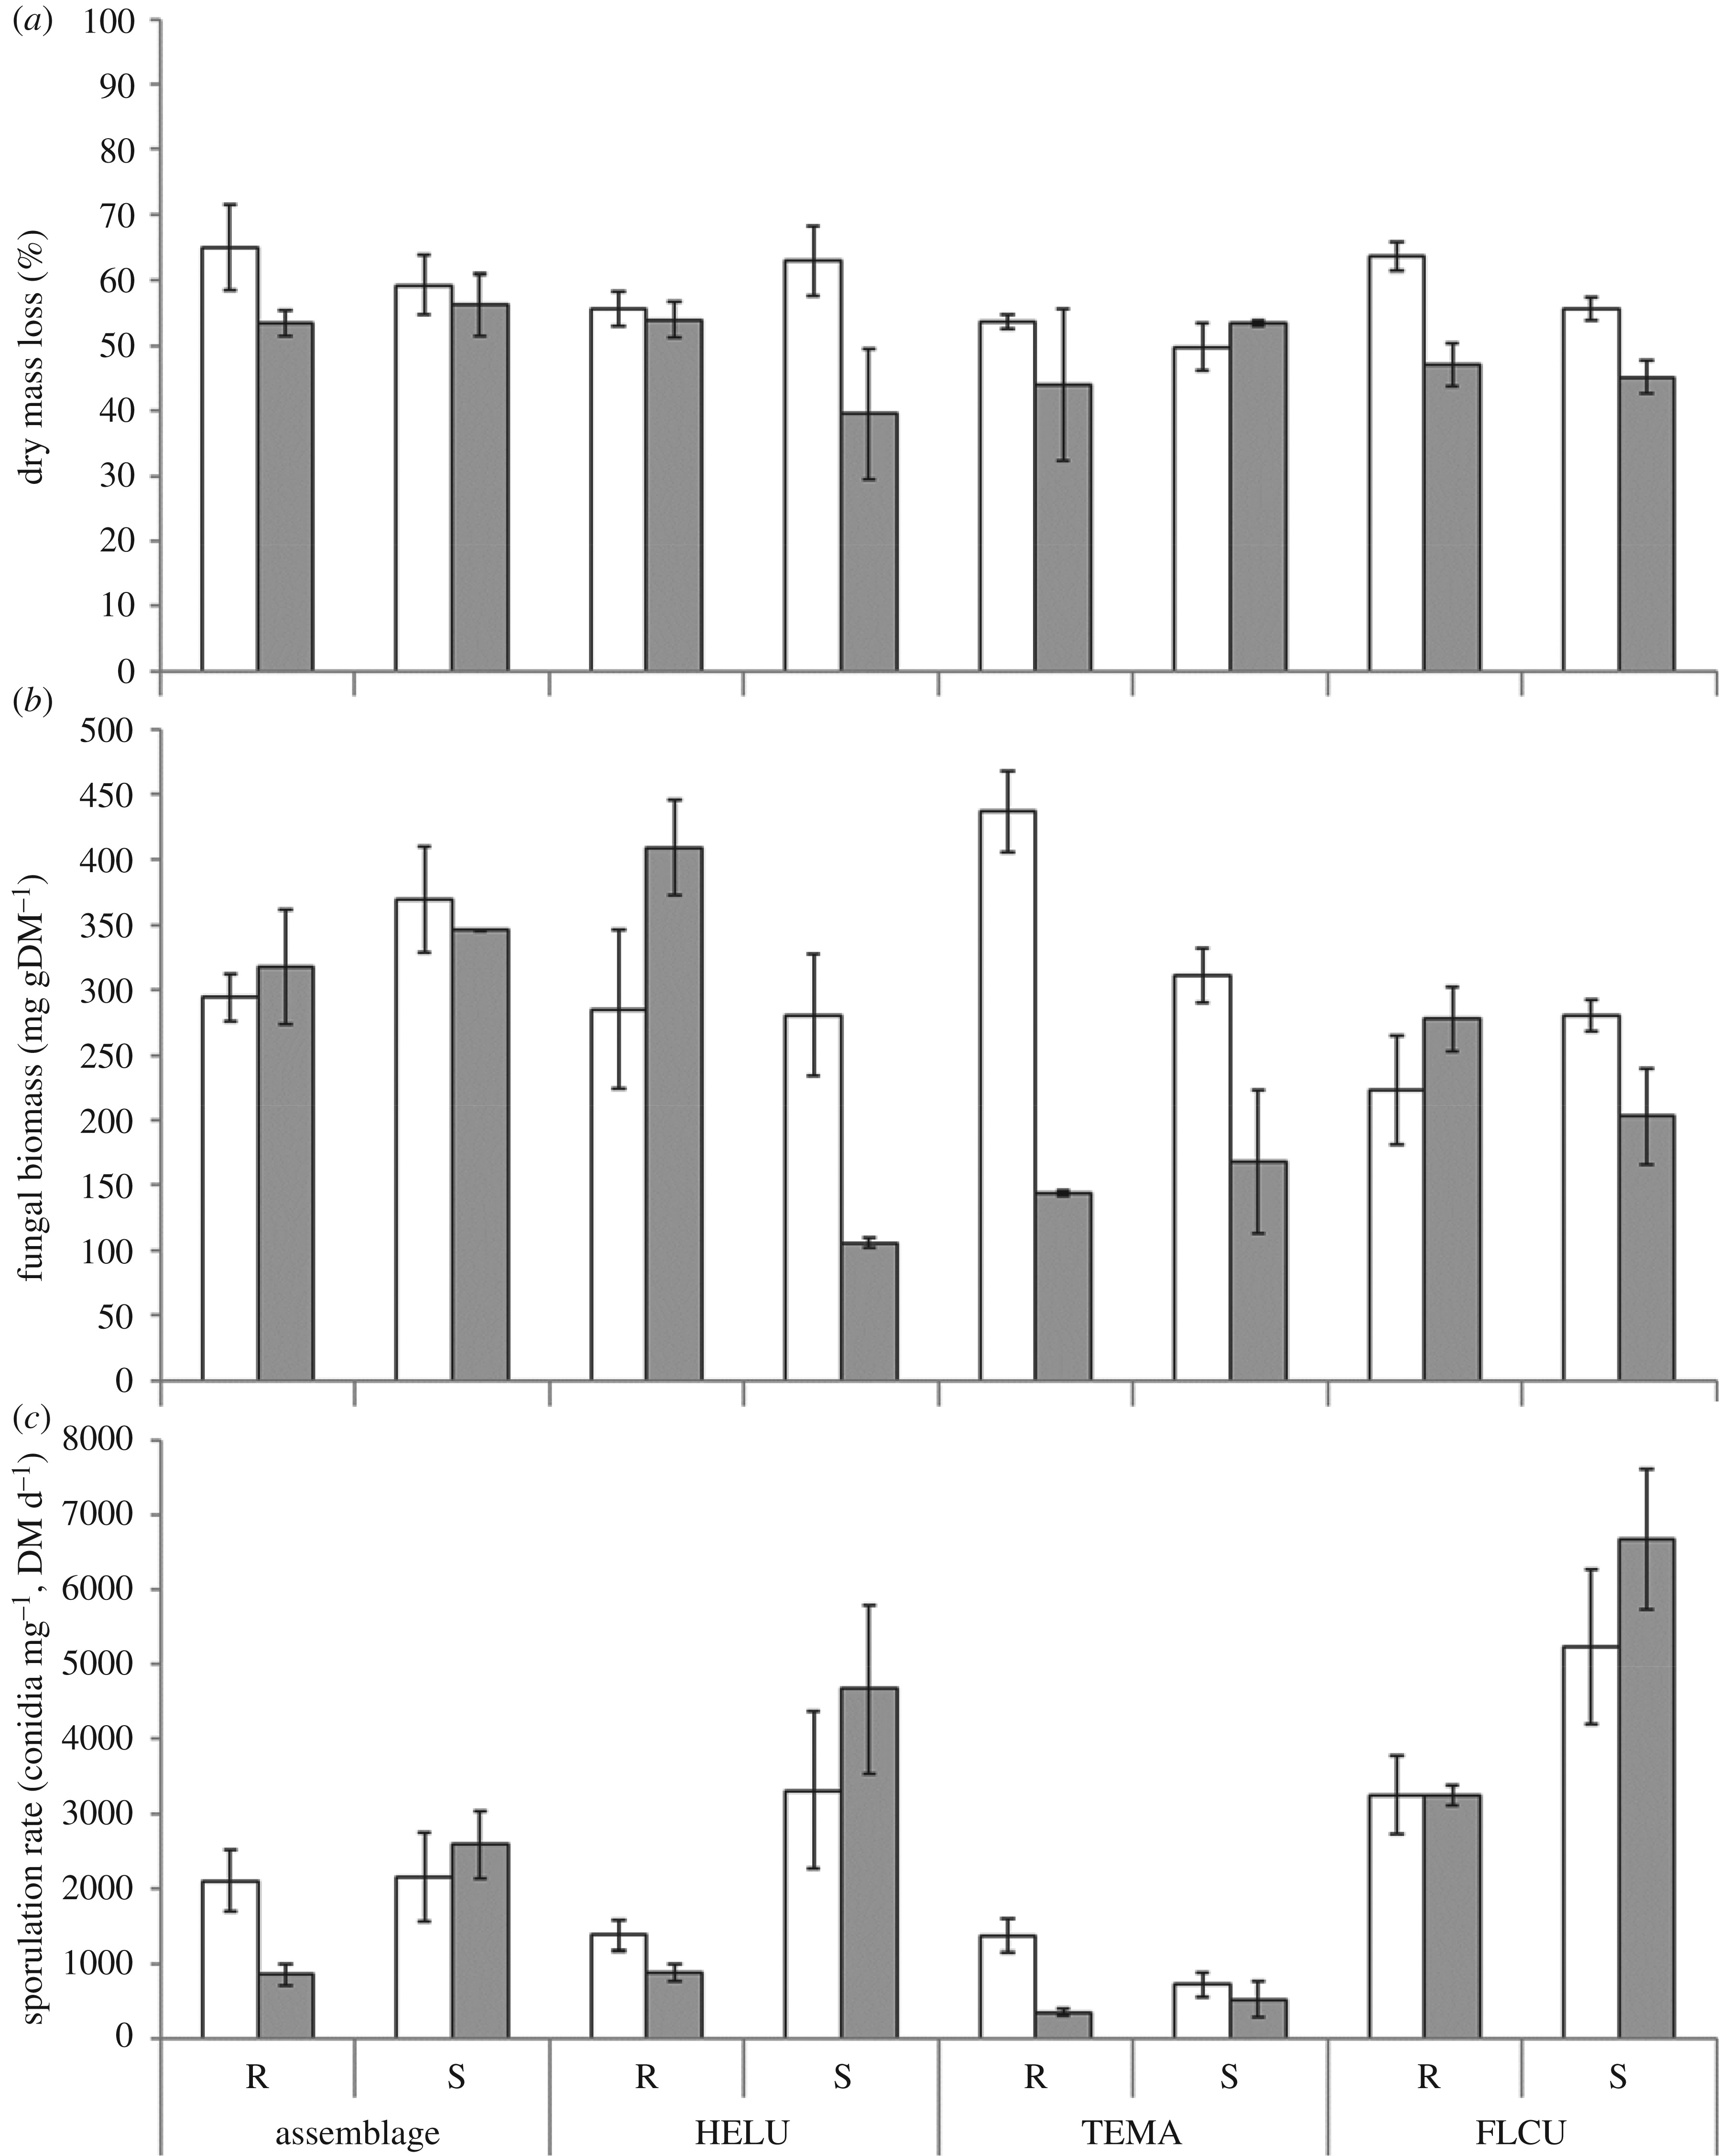 Are fungal strains from salinized streams adapted to salt